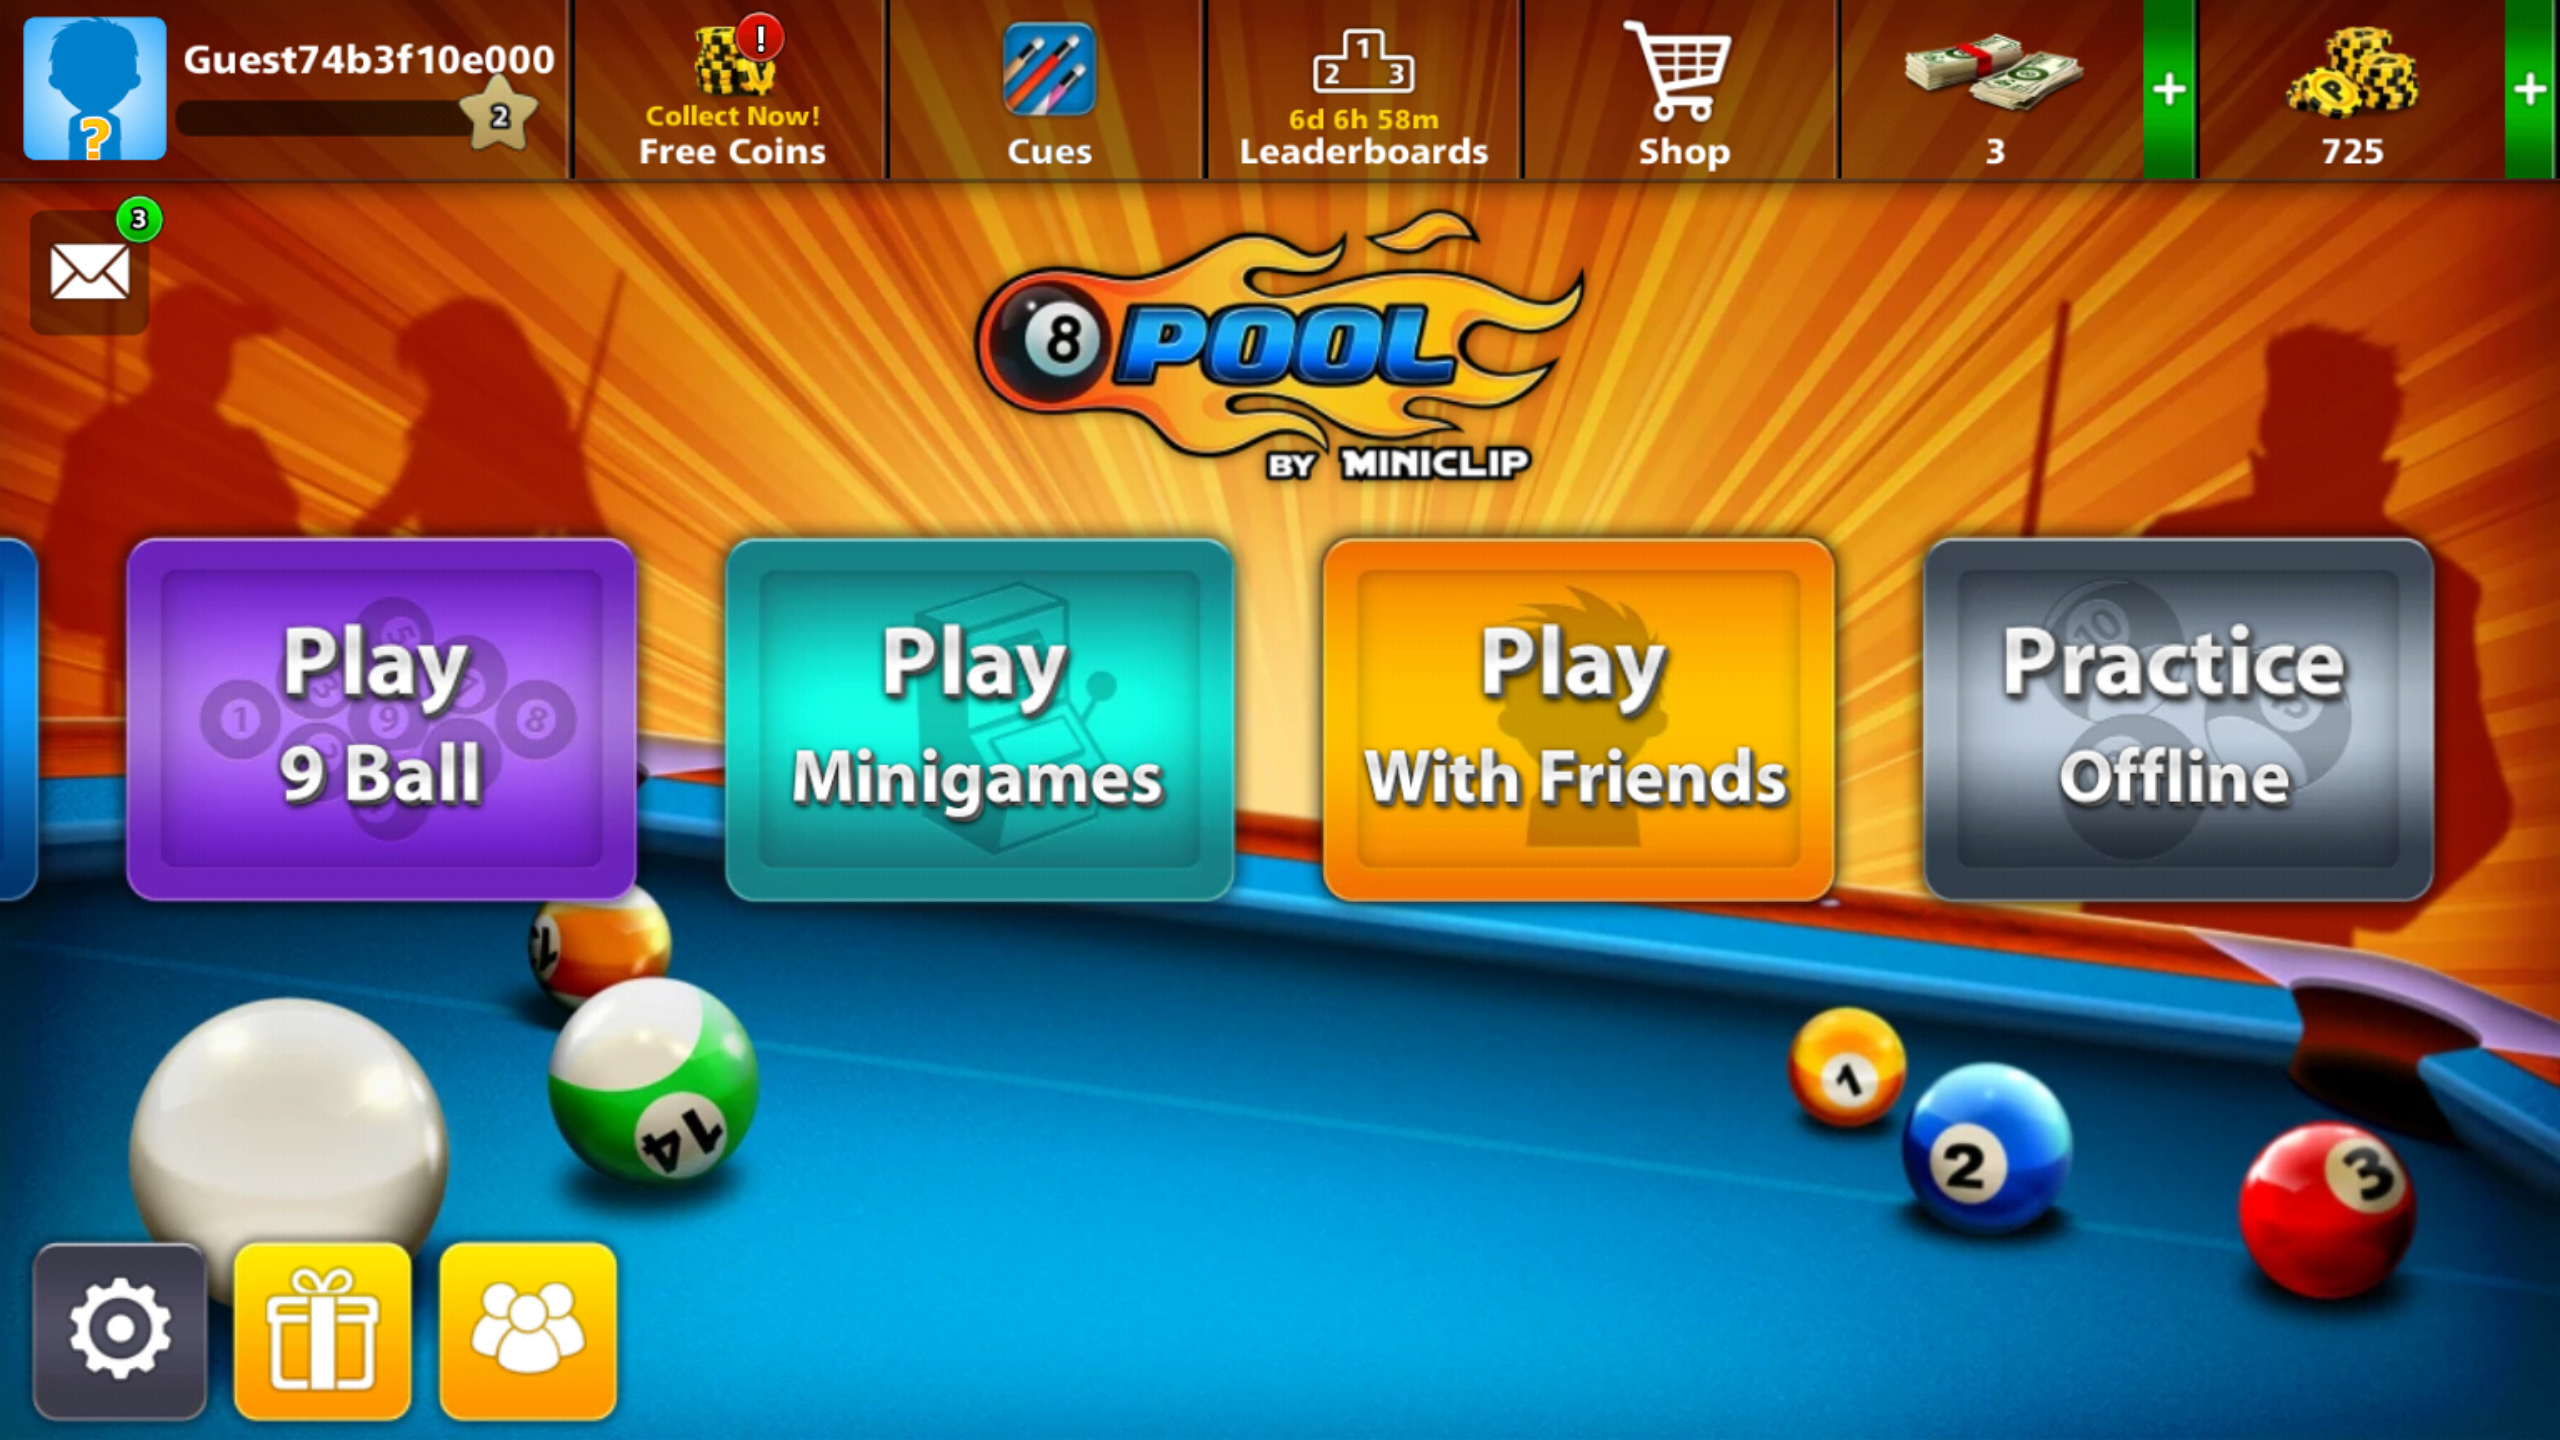 8 ball quick fire pool multiplayer online